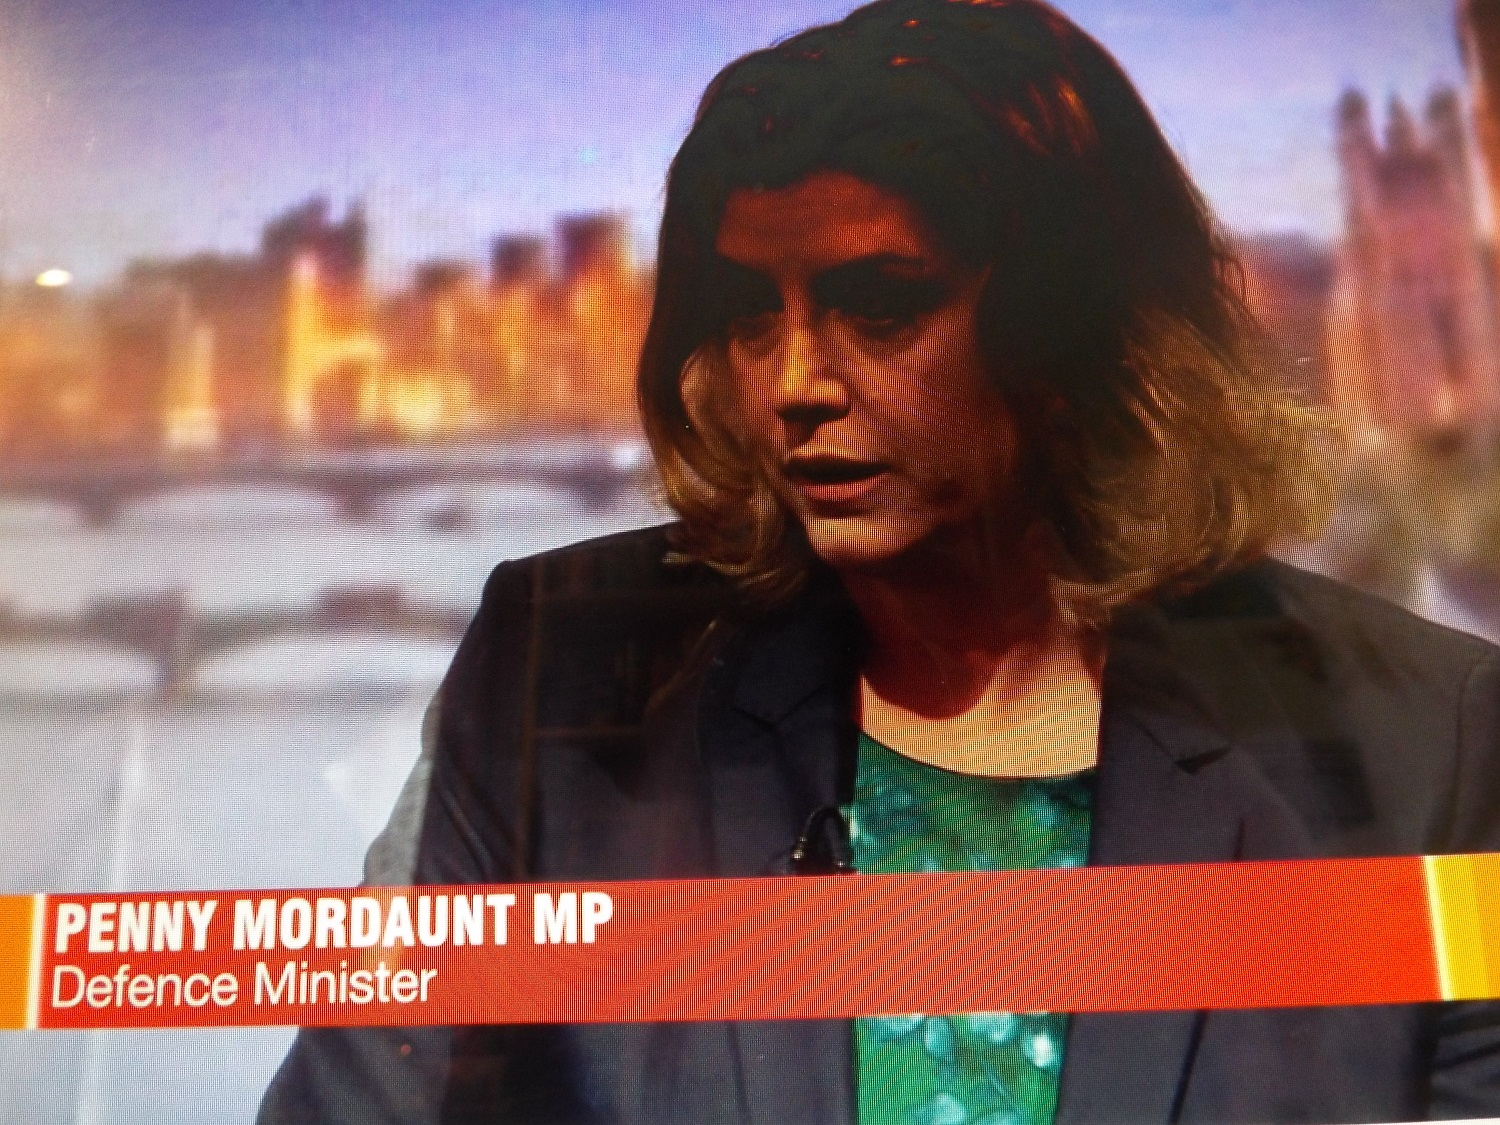 Mordaunt on the Andrew Marr show, as a Defence Minister - she is now elevated to Secretary of State